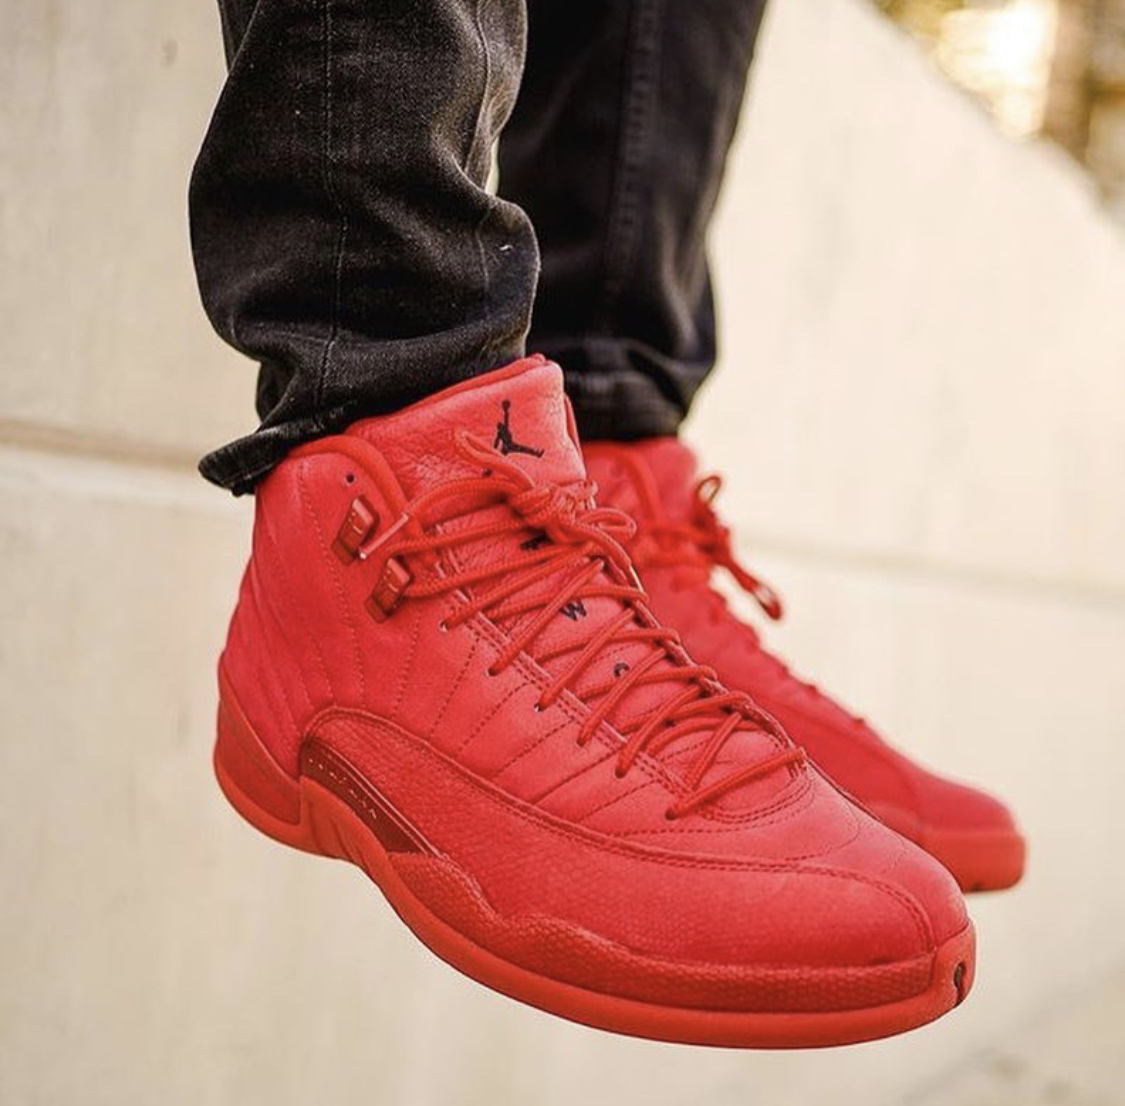 jordan 12 gym red outfit